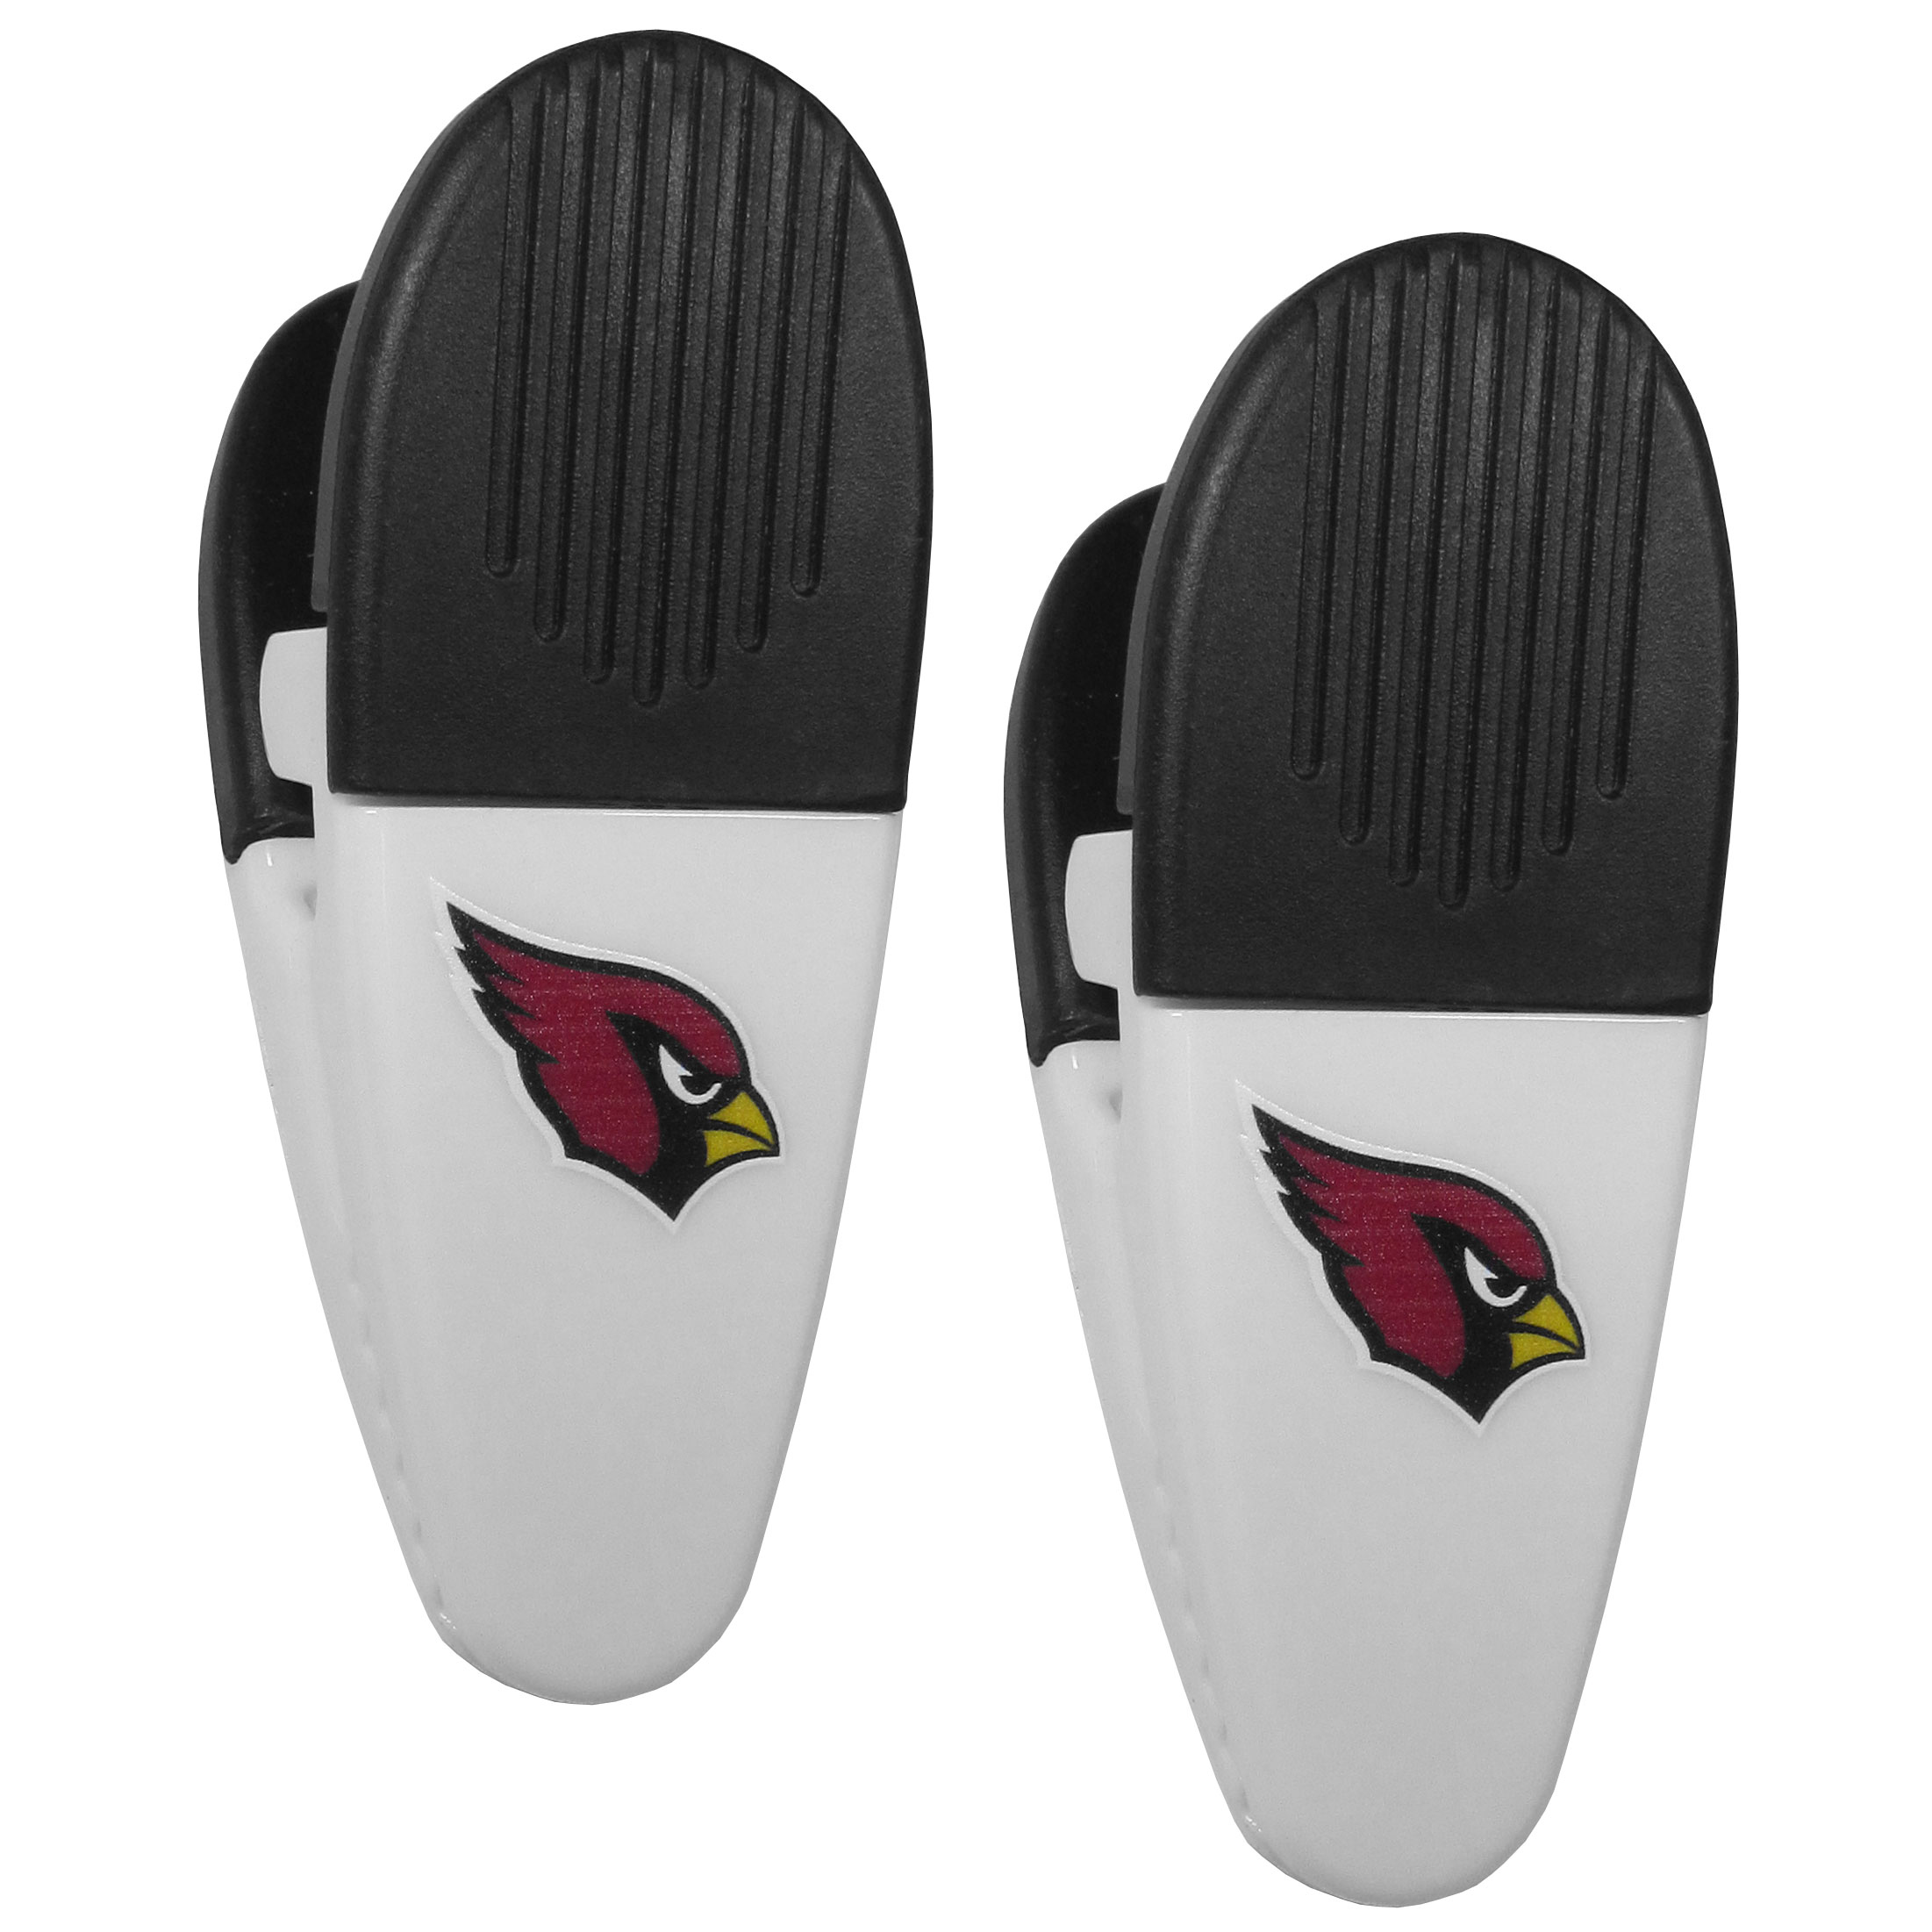 Arizona Cardinals Mini Chip Clip Magnets, 2 pk - Our Arizona Cardinals chip clip magnets feature a crisp team logo on the front of the clip. The clip is perfect for sealing chips for freshness and with the powerful magnet on the back it can be used to attach notes to the fridge or hanging your child's artwork. Set of 2 magnet clips, each clip is 3.5 inches tall and 1.25 inch wide.